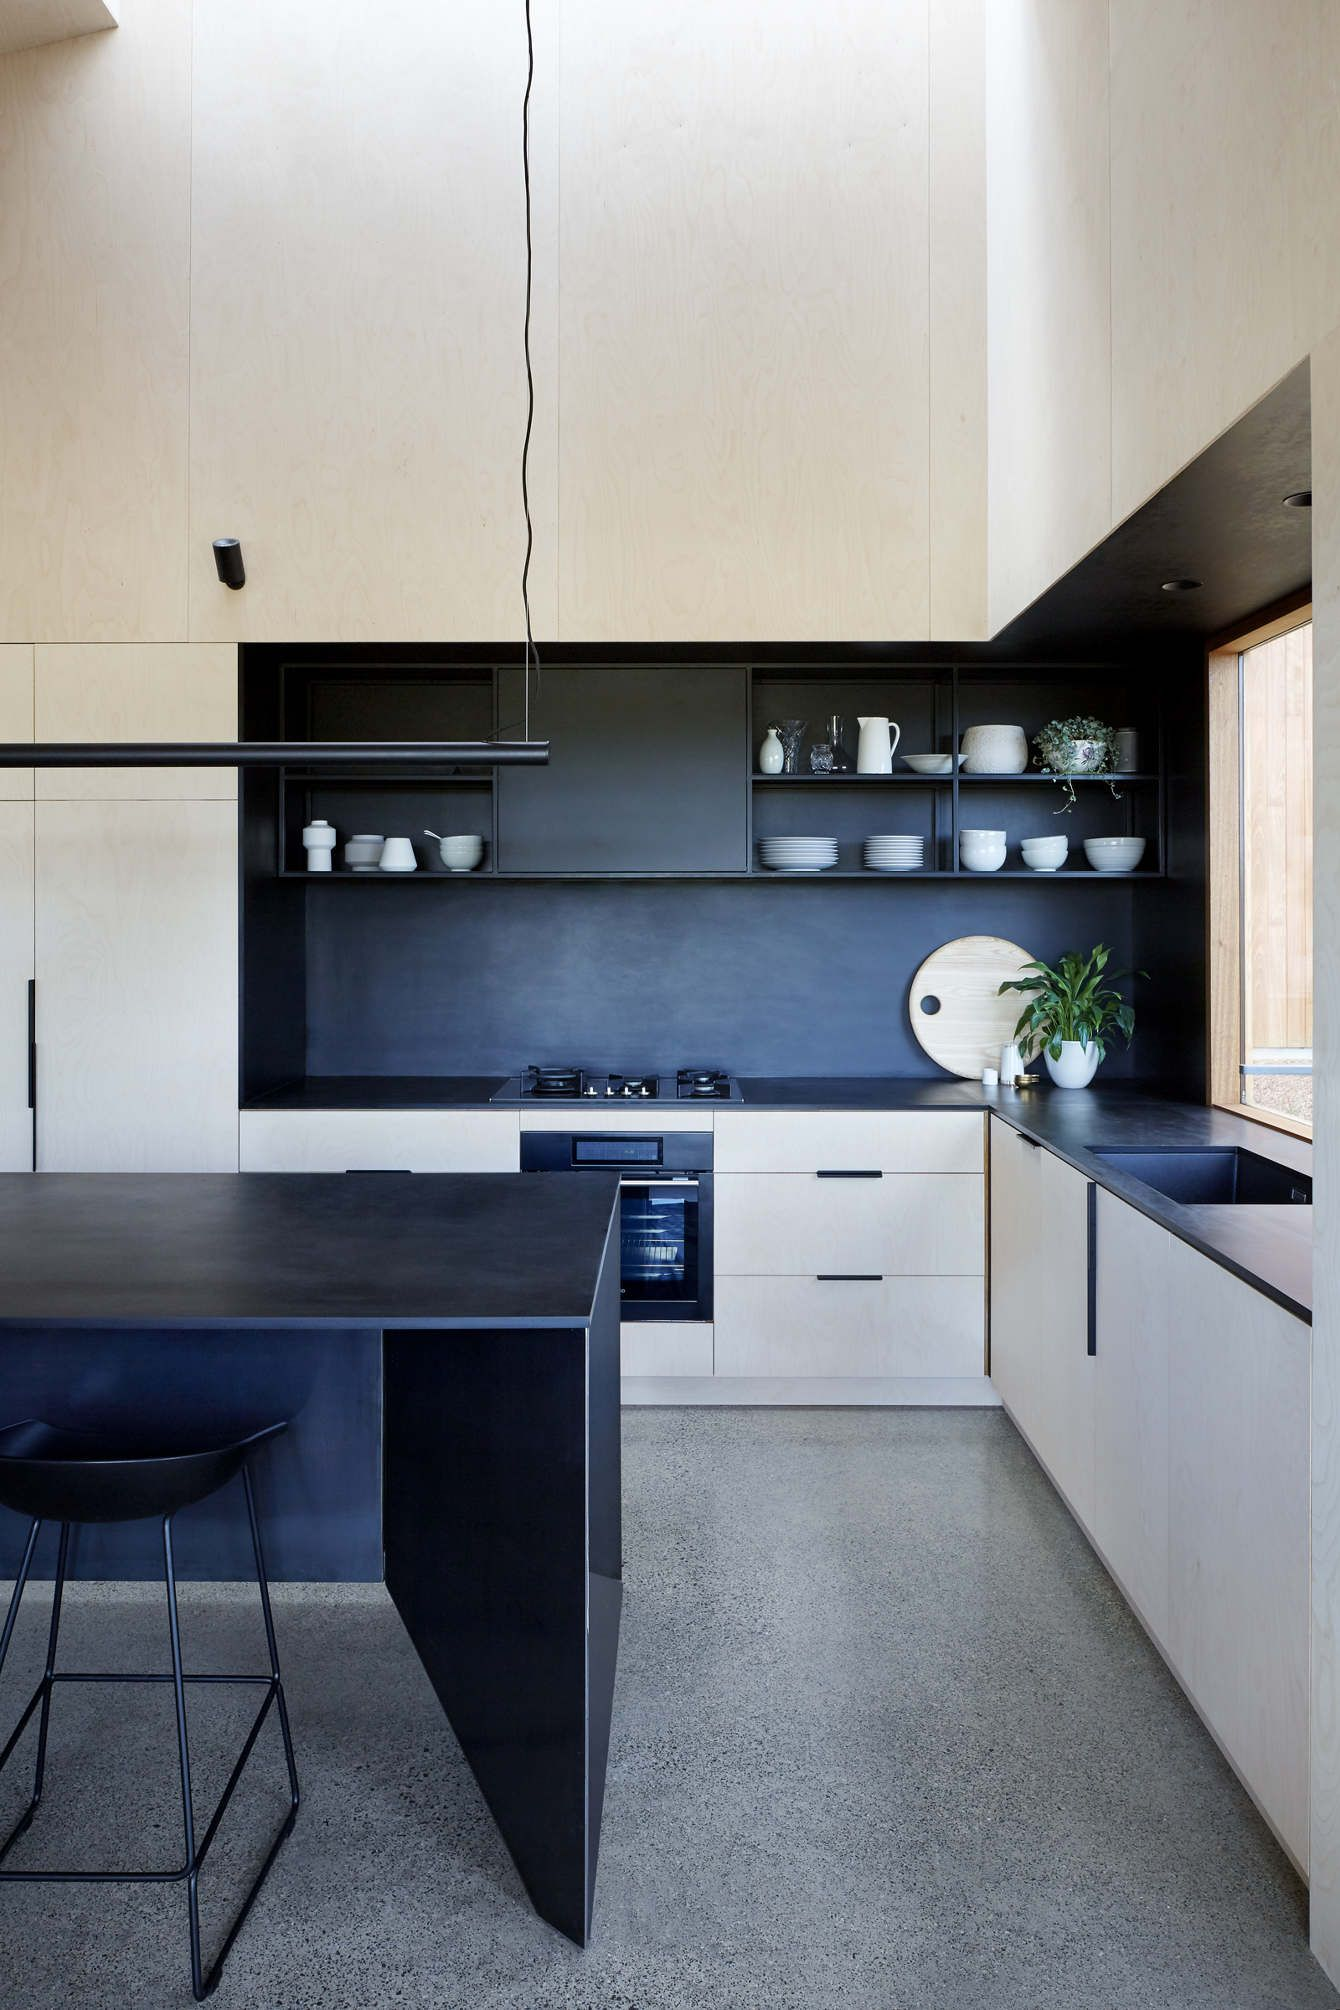 Ad for nobilia | Ideas para el hogar | Pinterest | Kitchens and Spaces